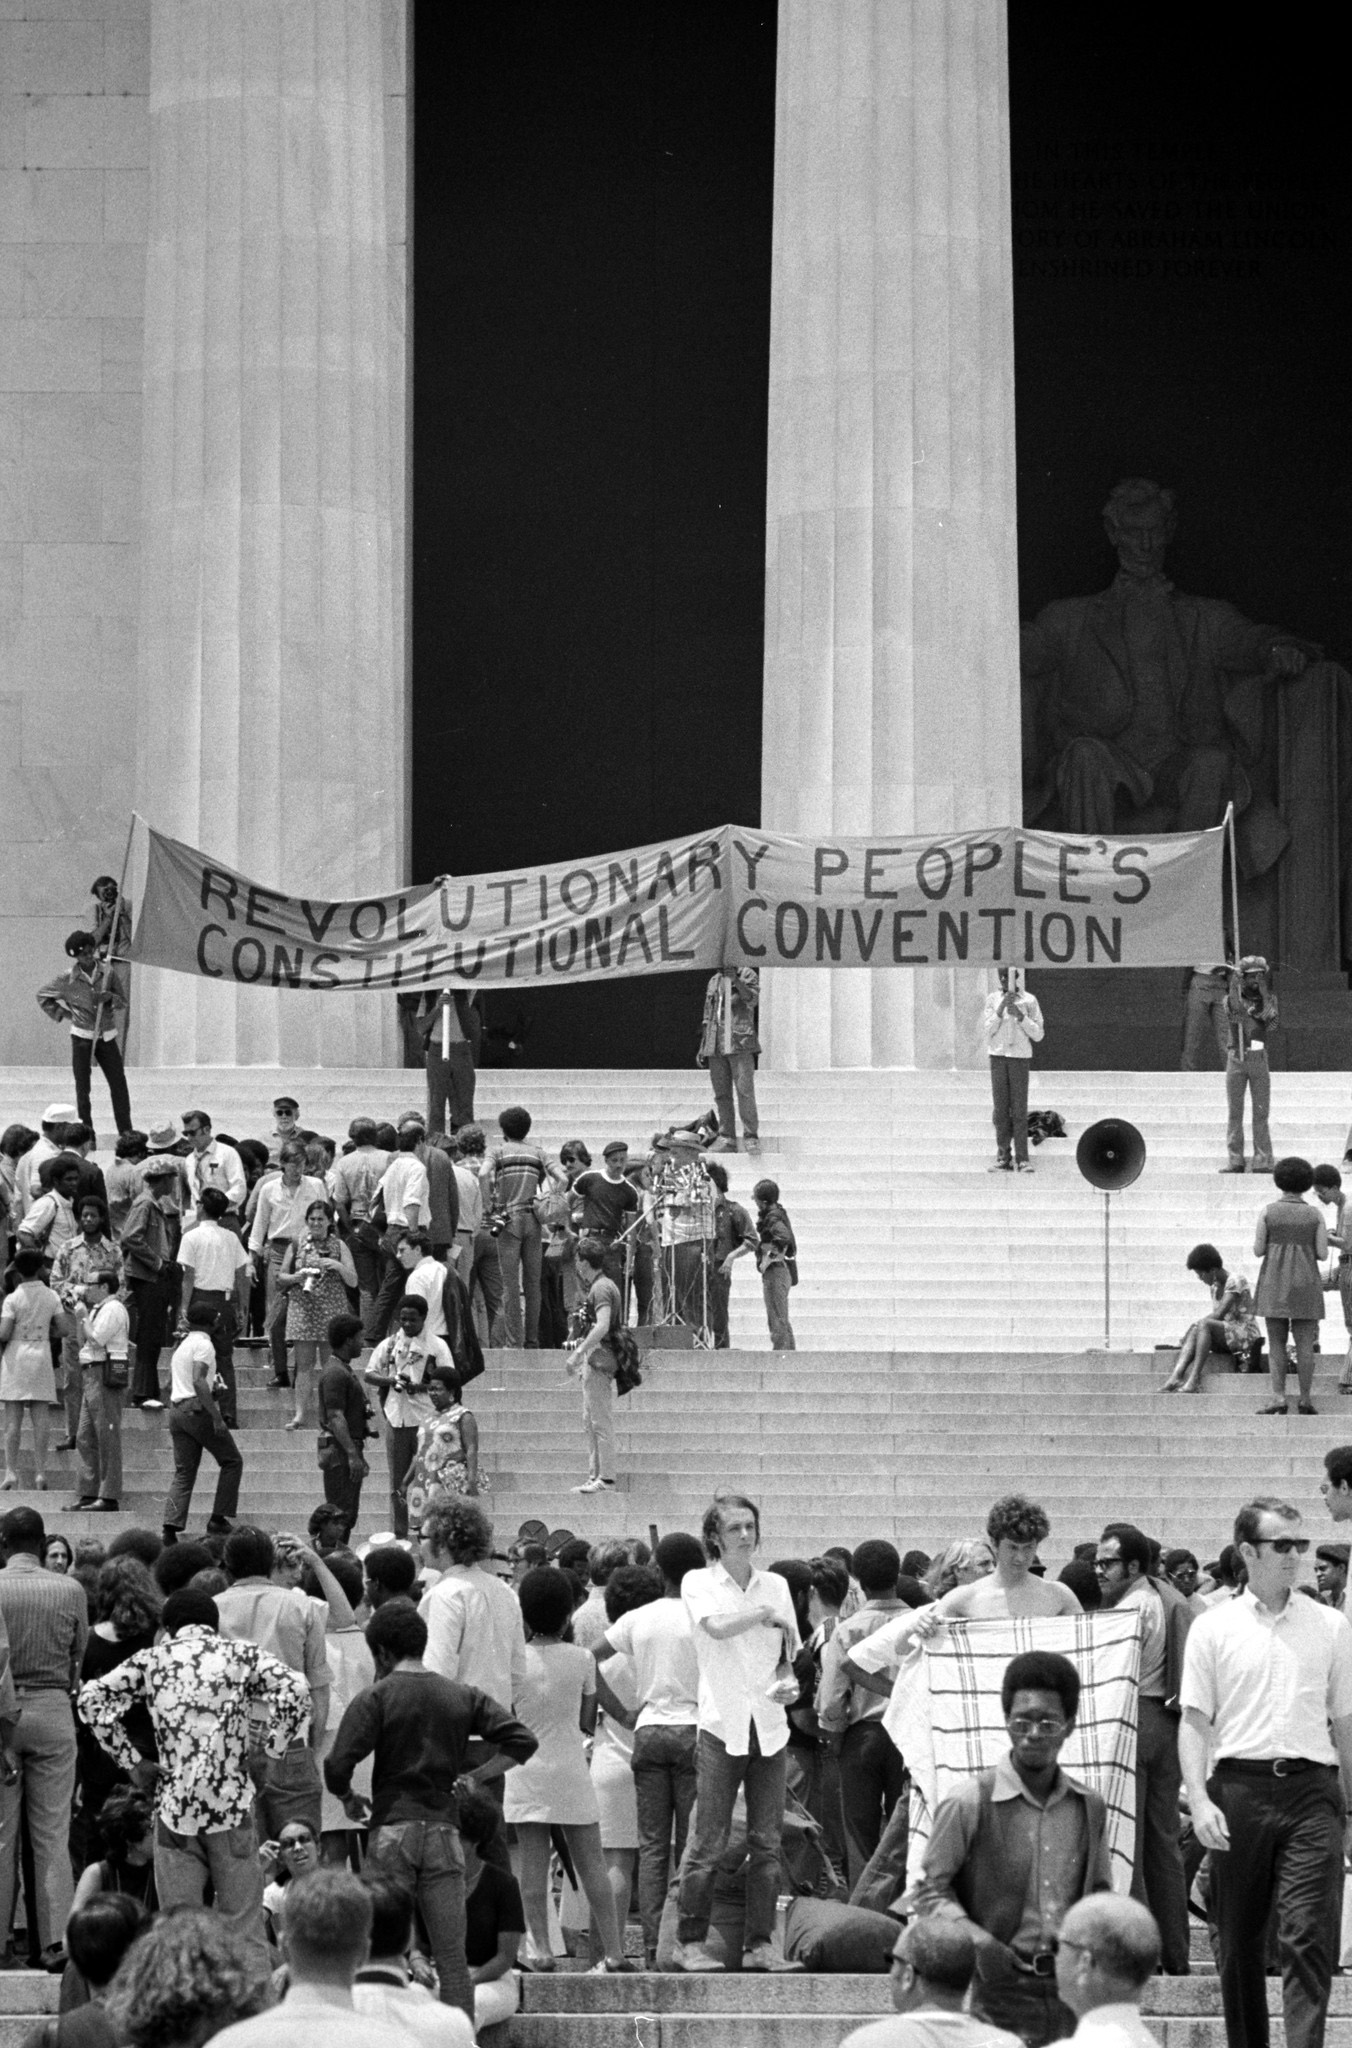 Demonstrators attend a 1970 Black Panter Party Convention at the Lincoln Memorial.